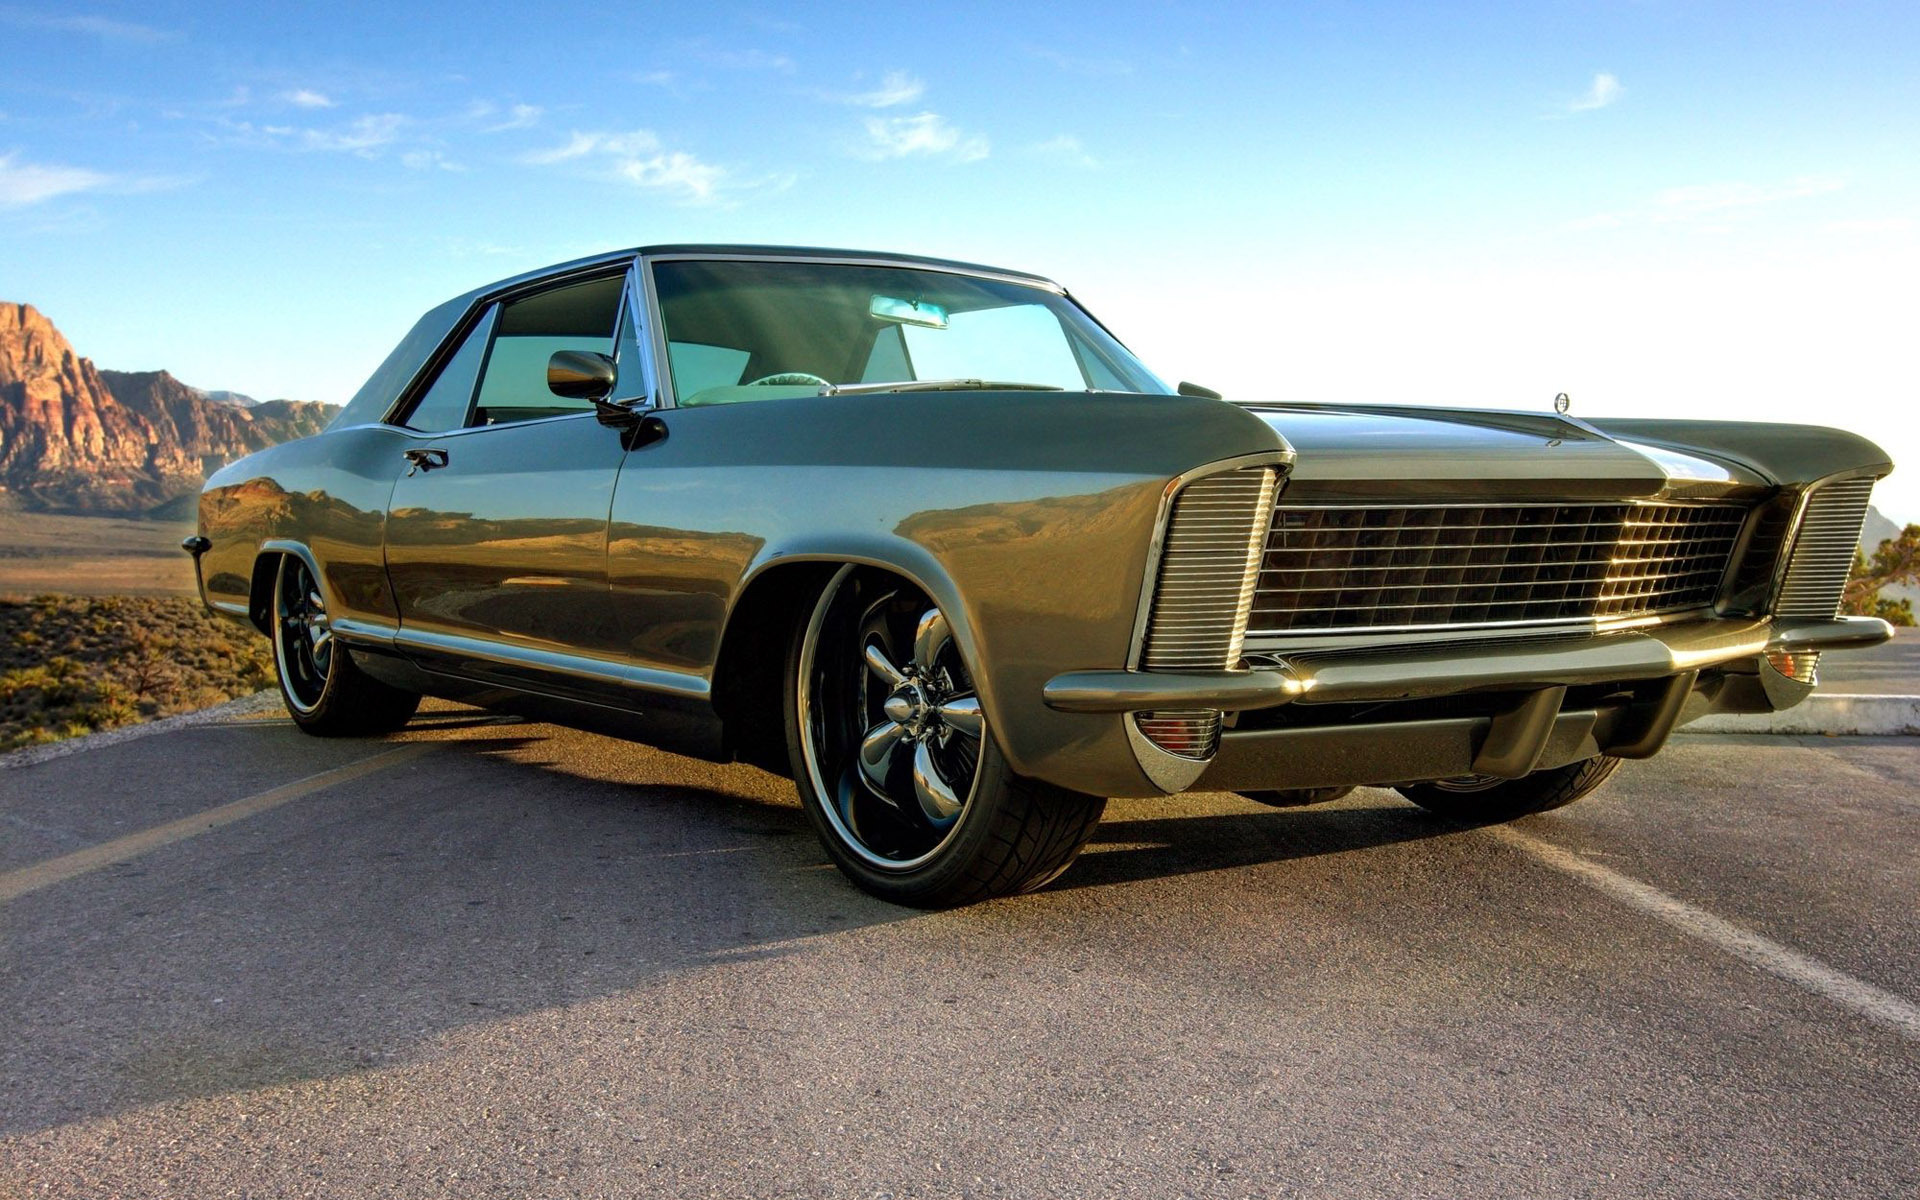 Lowrider Car Hd Wallpaper Buick Wallpaper Wallpapers High Quality Download Free